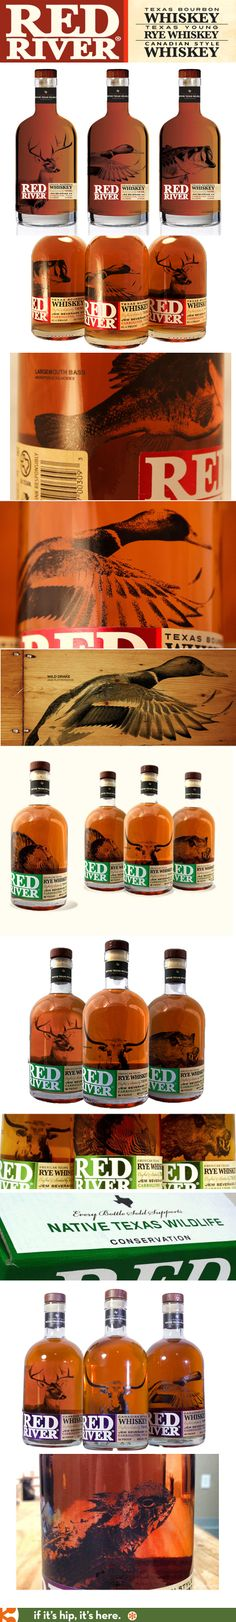 Red River's American Whiskey, Rye Whiskey and Canadian Whiskey have silk-screened bottles with various wildlife and a portion of the proceeds from each bottle goes to wildlife conservation. Branding and design by One Fast Buffalo.